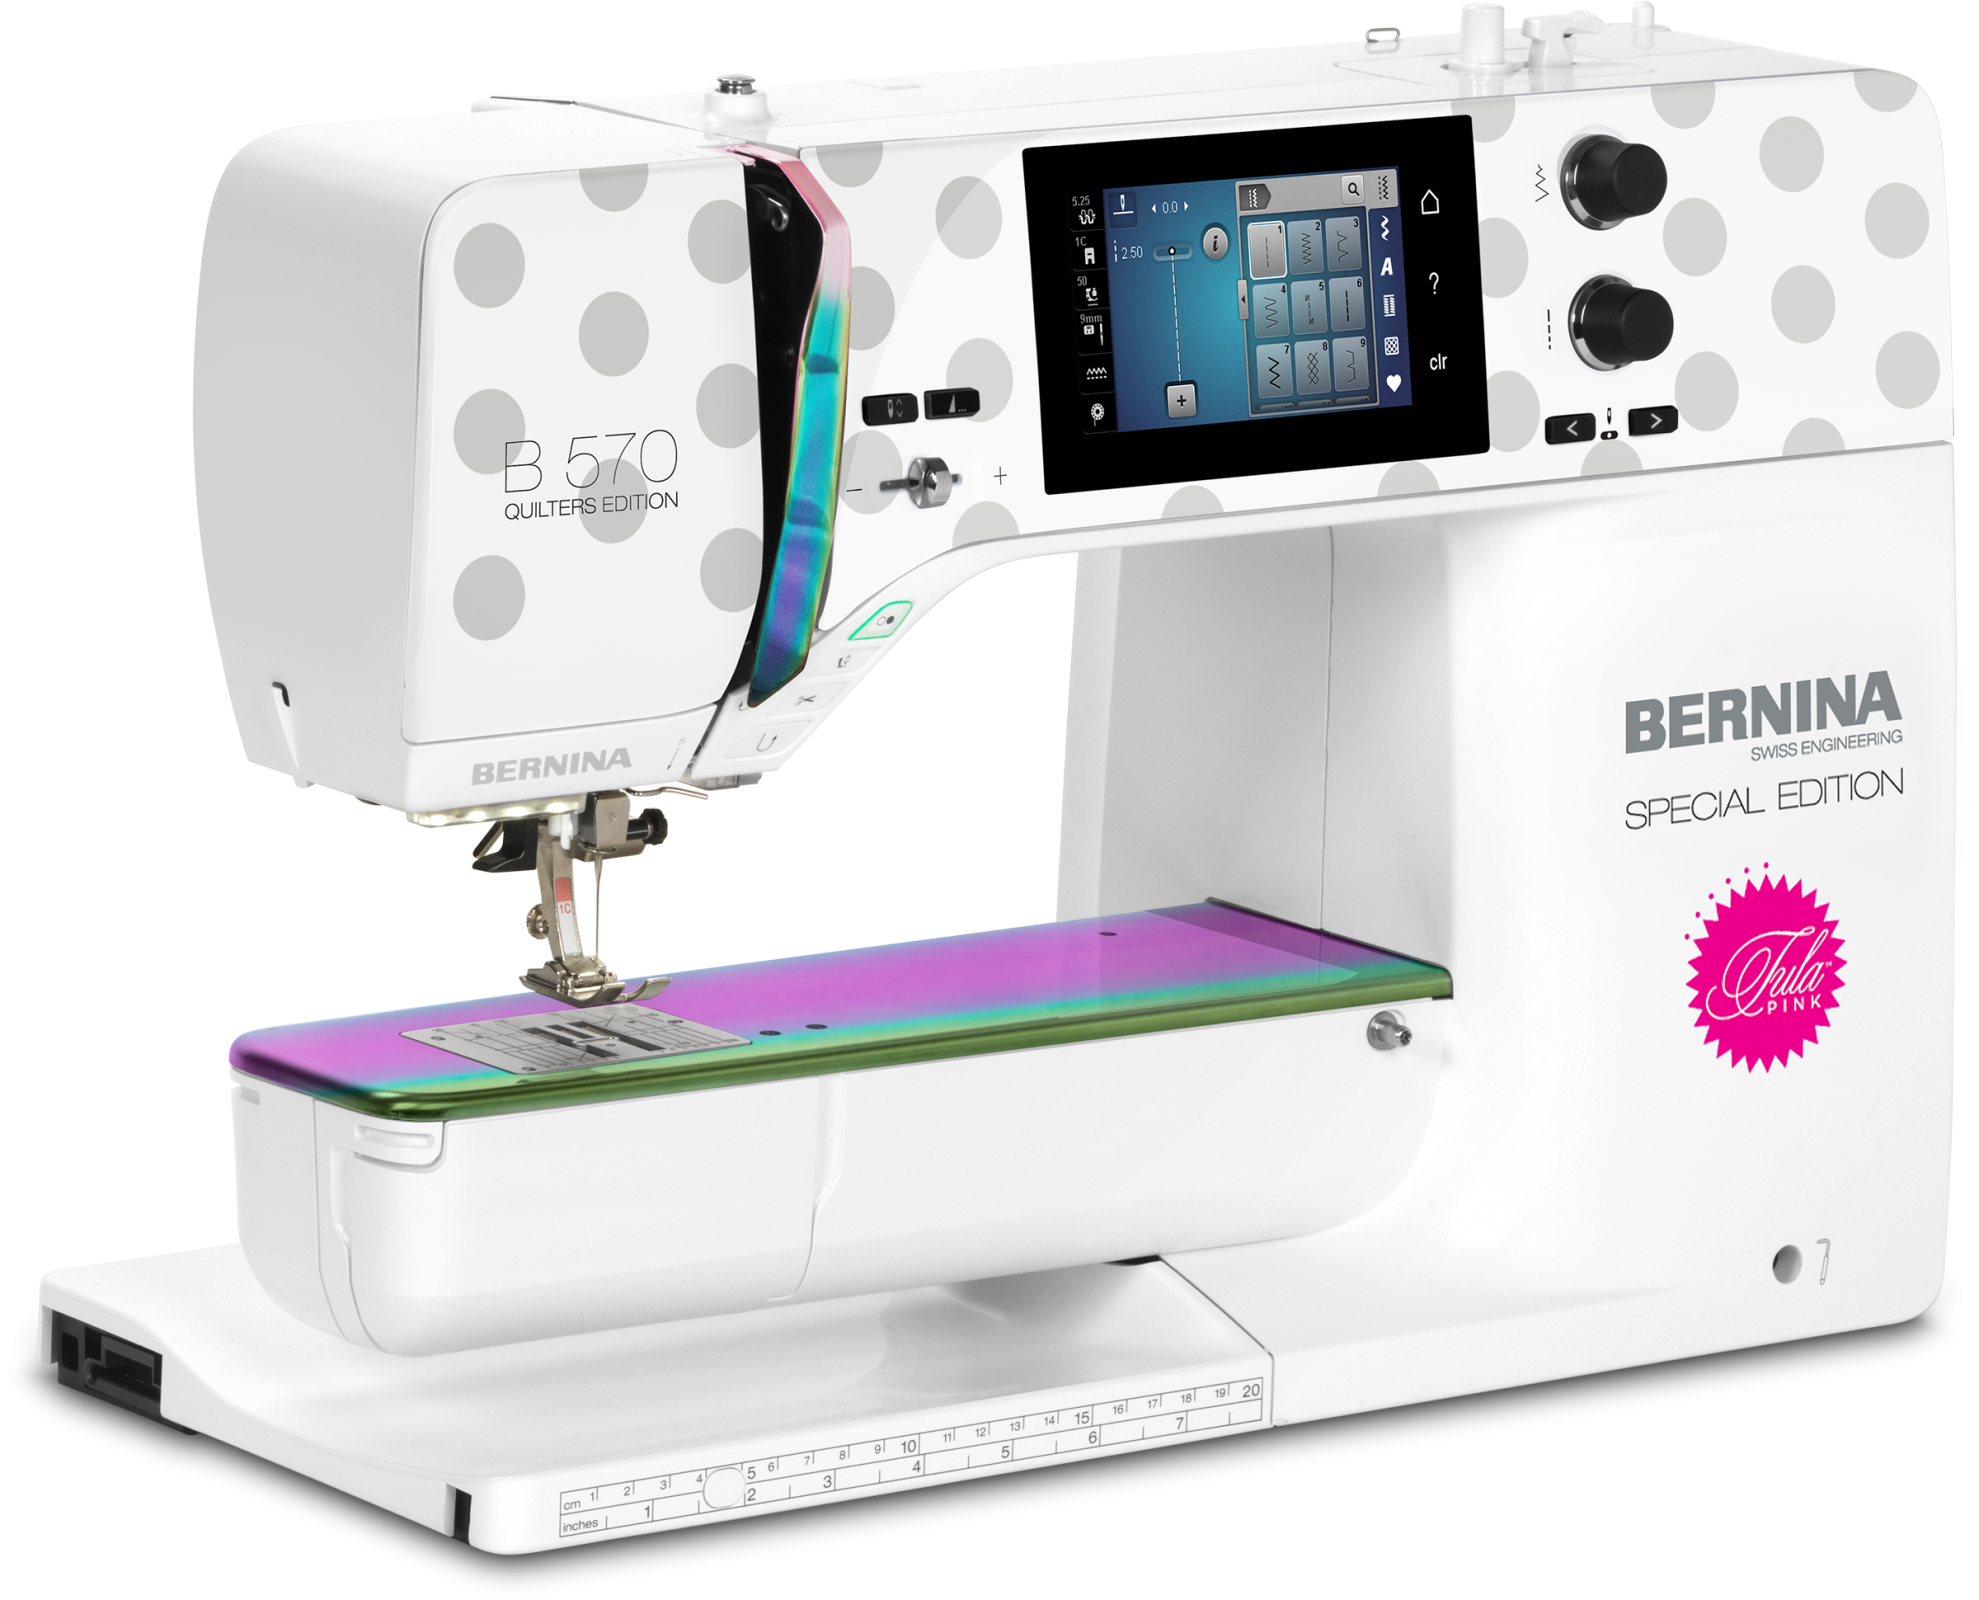 BERNINA sewing machine & embroidery